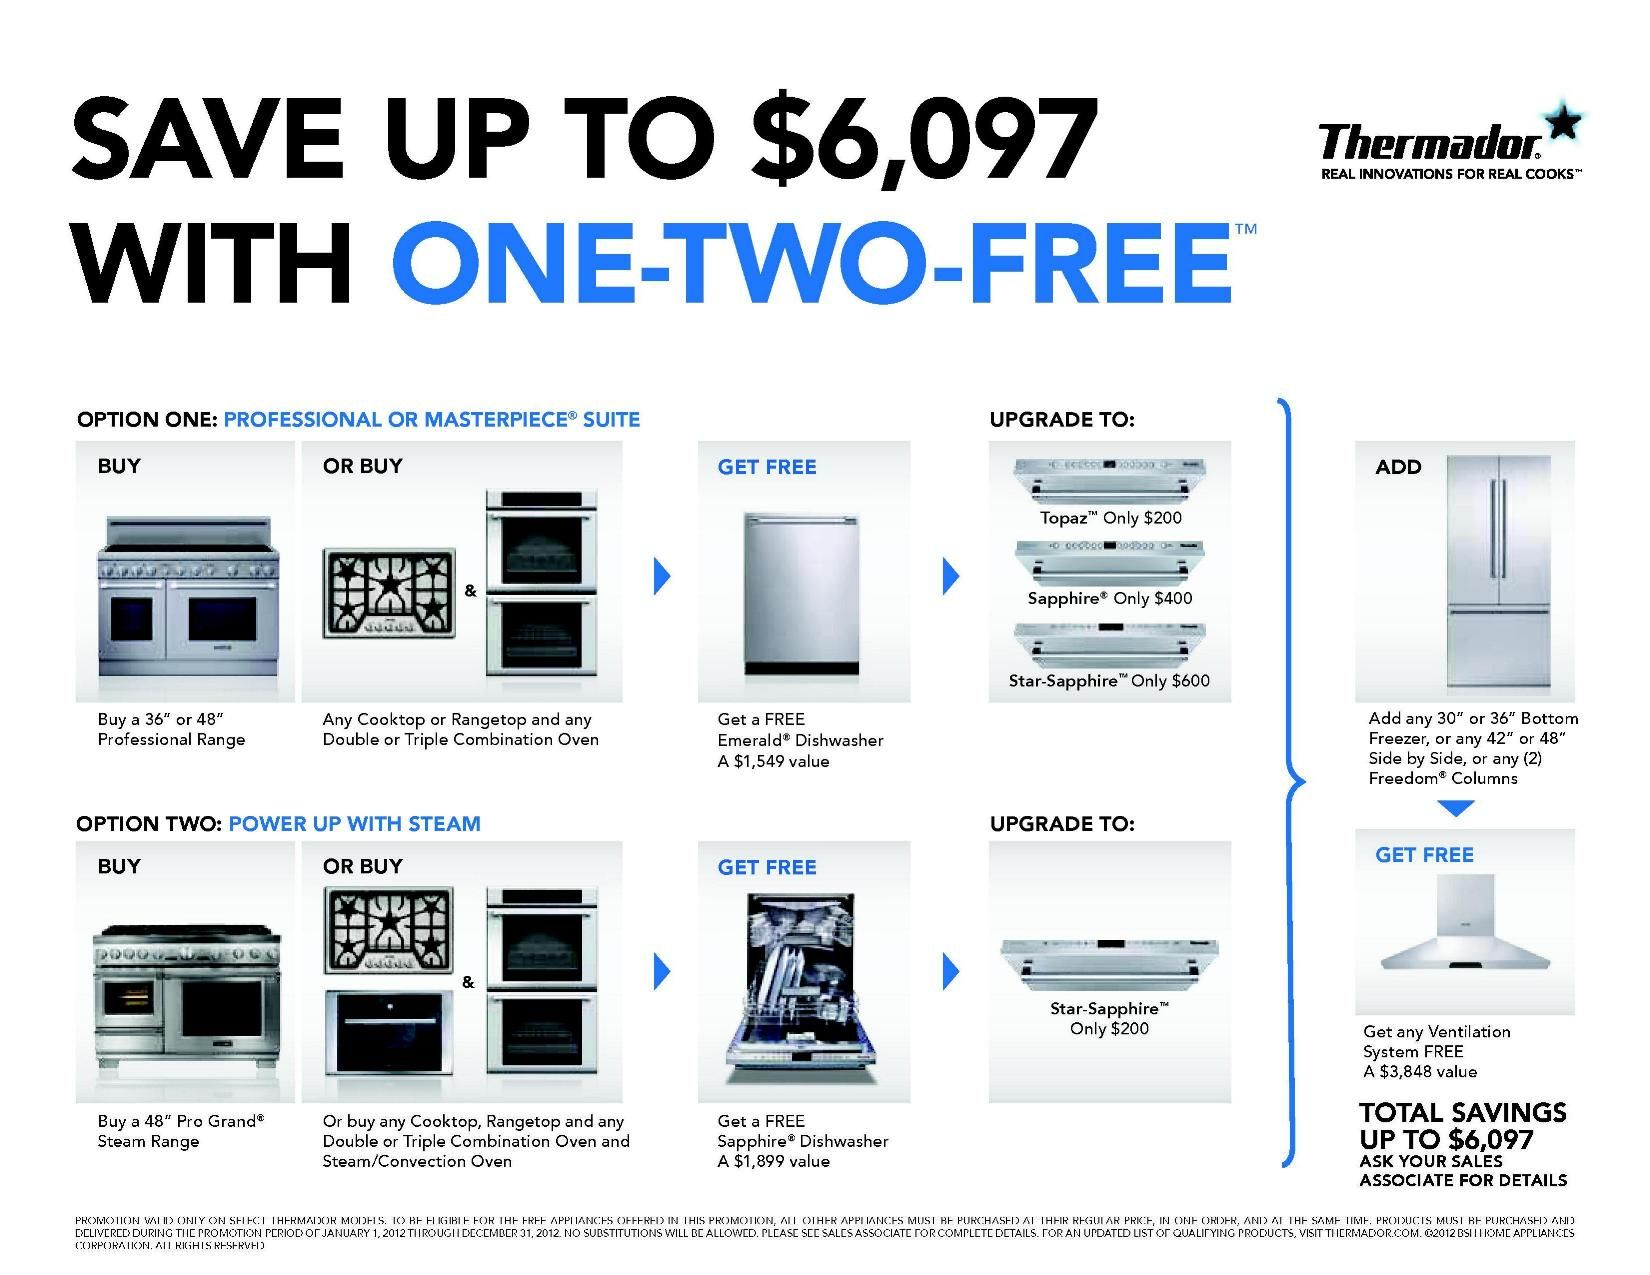 Factory Rebates will help you save THOUSANDS on new appliances!!!